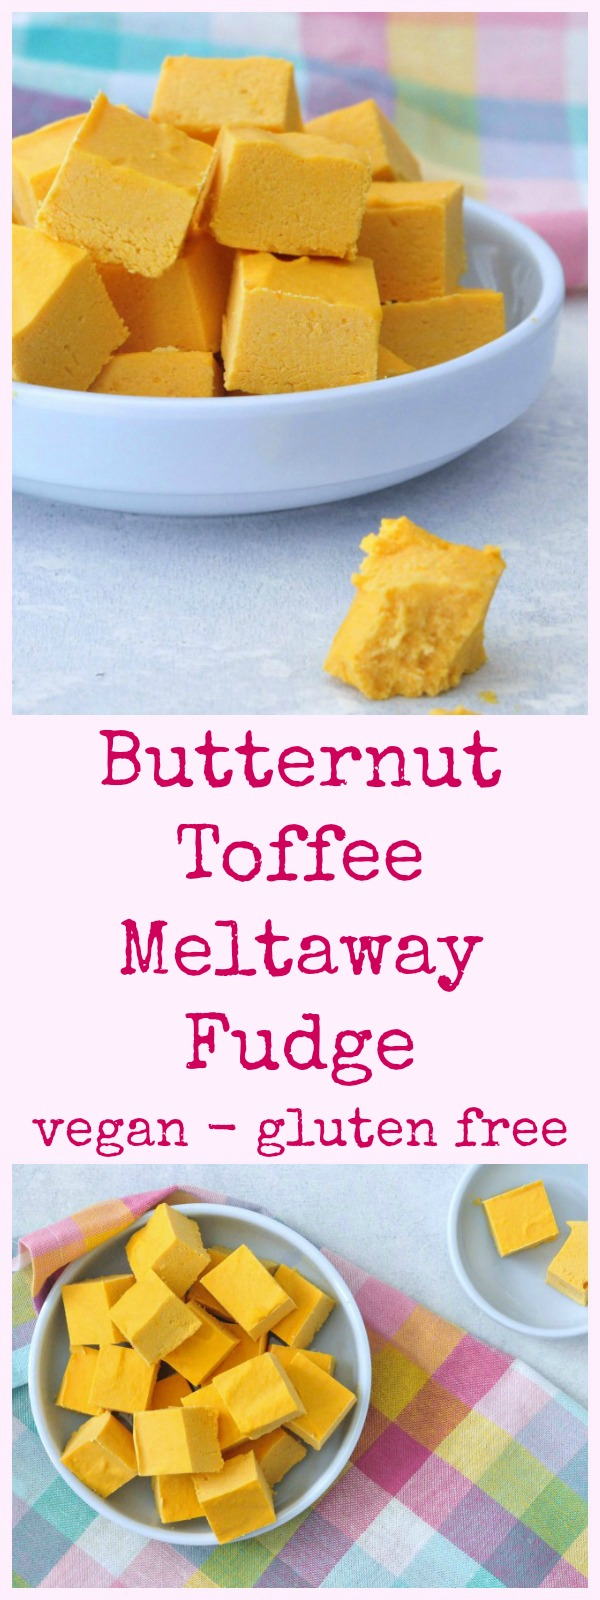 Butternut Toffee Meltaway Fudge @spabettie #vegan #glutenfree